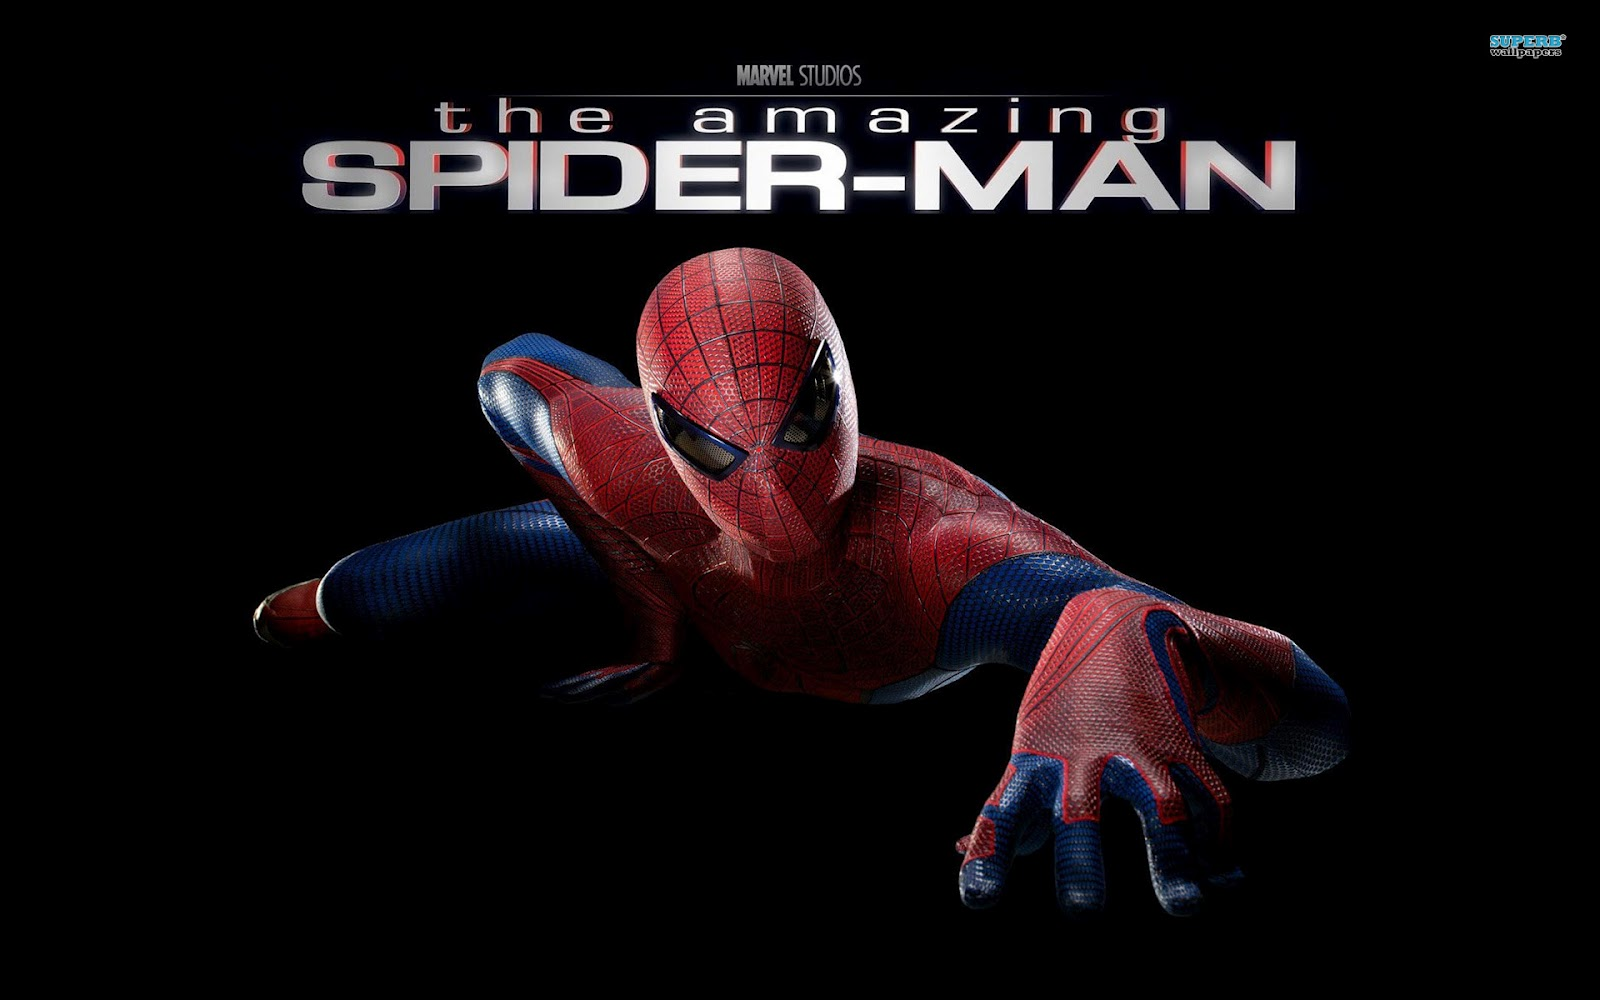 Steam Community :: The Amazing Spider-Man